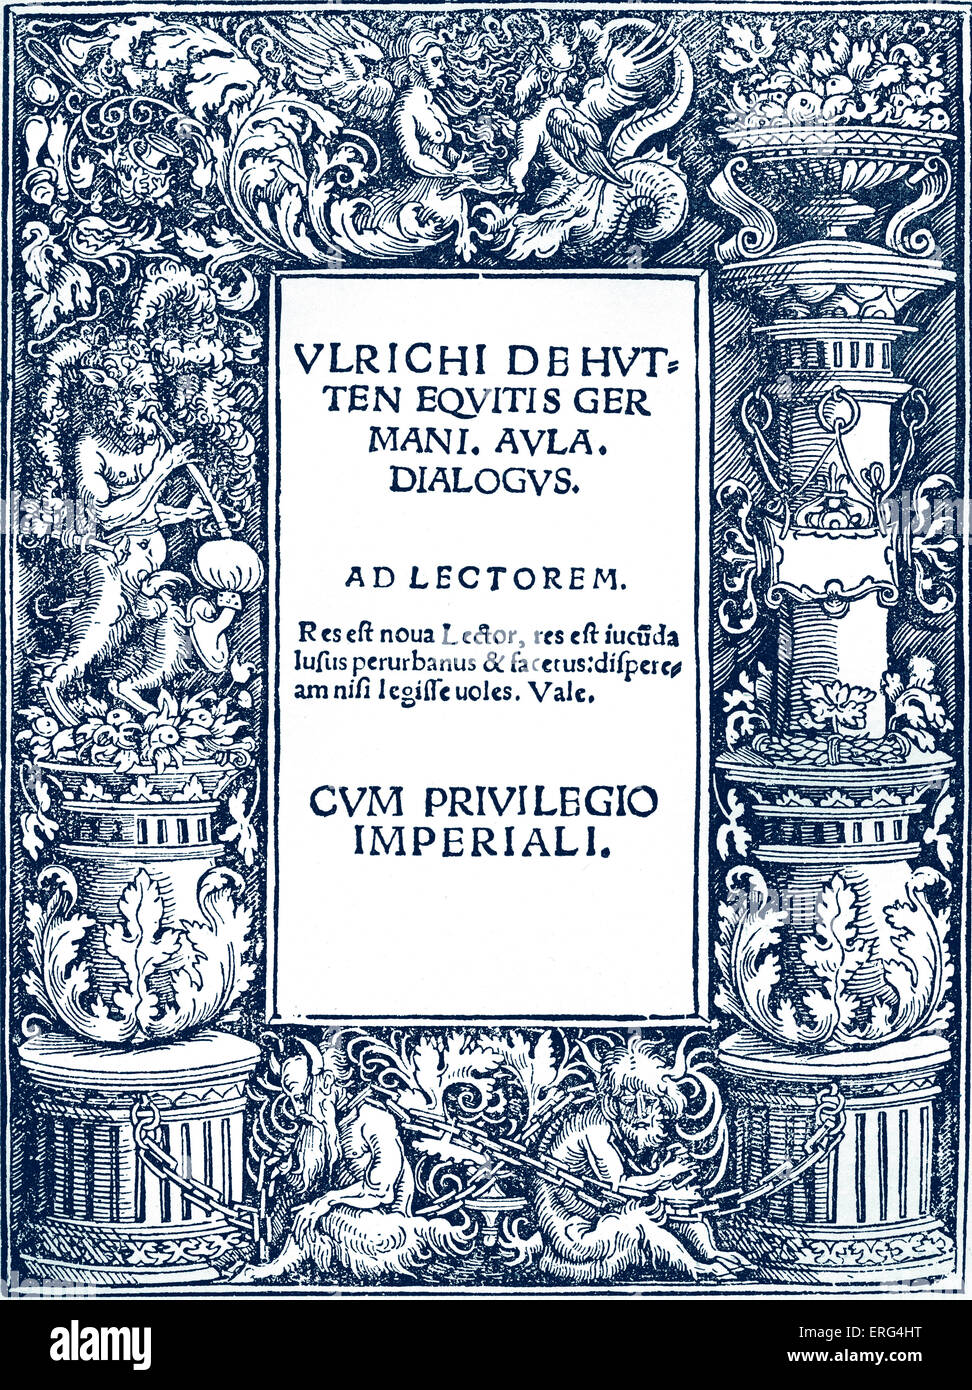 Title page to Ulrich von Hutten 's 'Dialogues', published Augsburg 1529. UvH German Church reformer - Stock Image